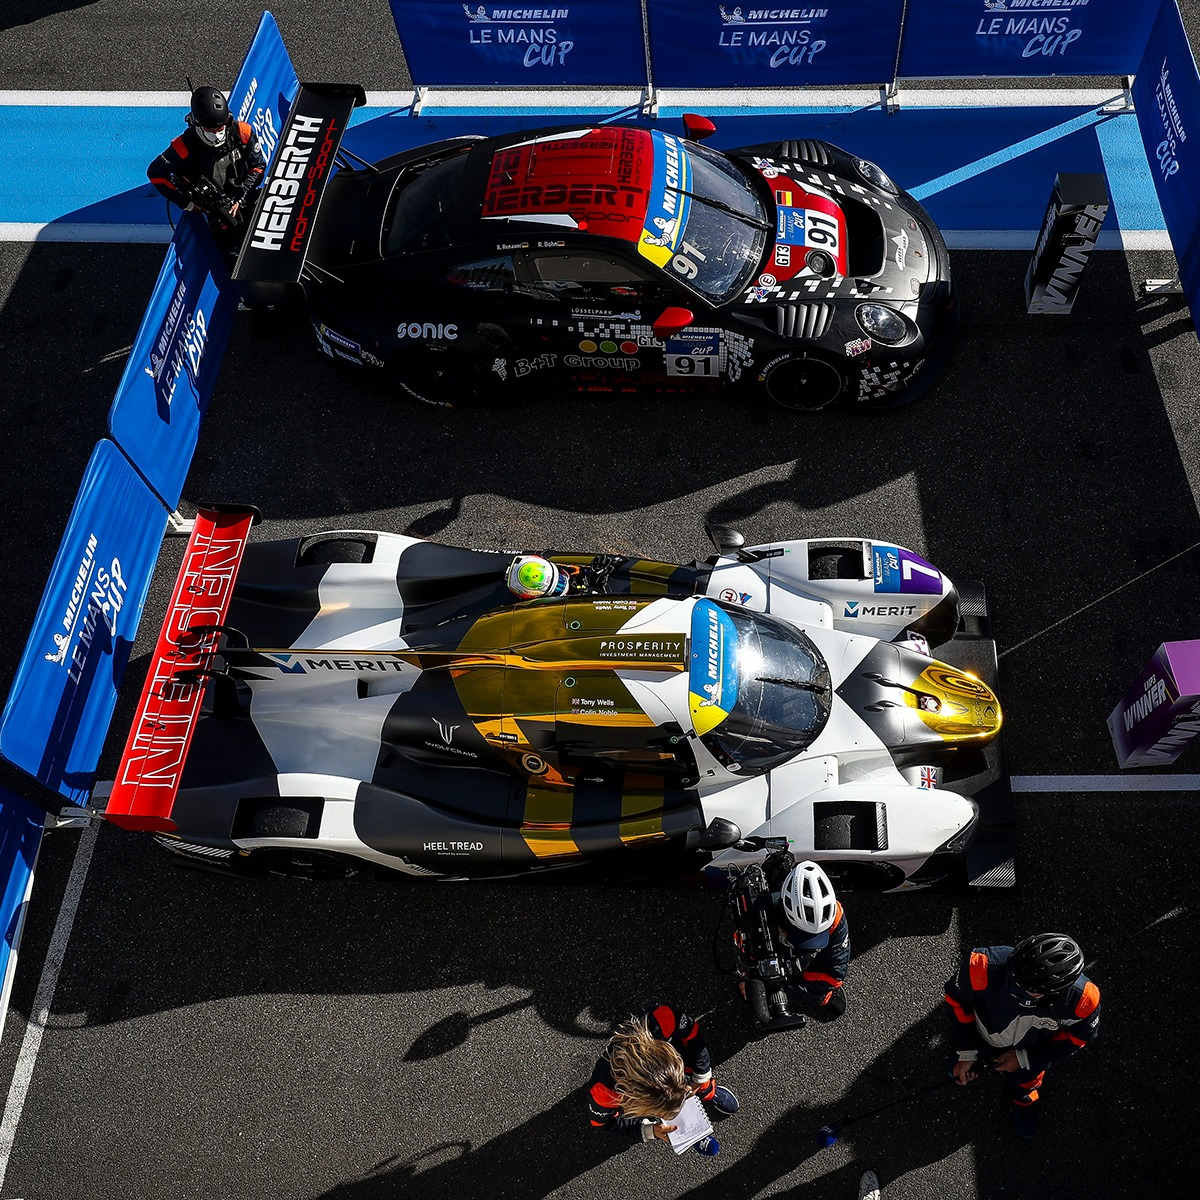 Nielsen Racing 5 - Wells and Noble shine in Le Mans Cup at Monza